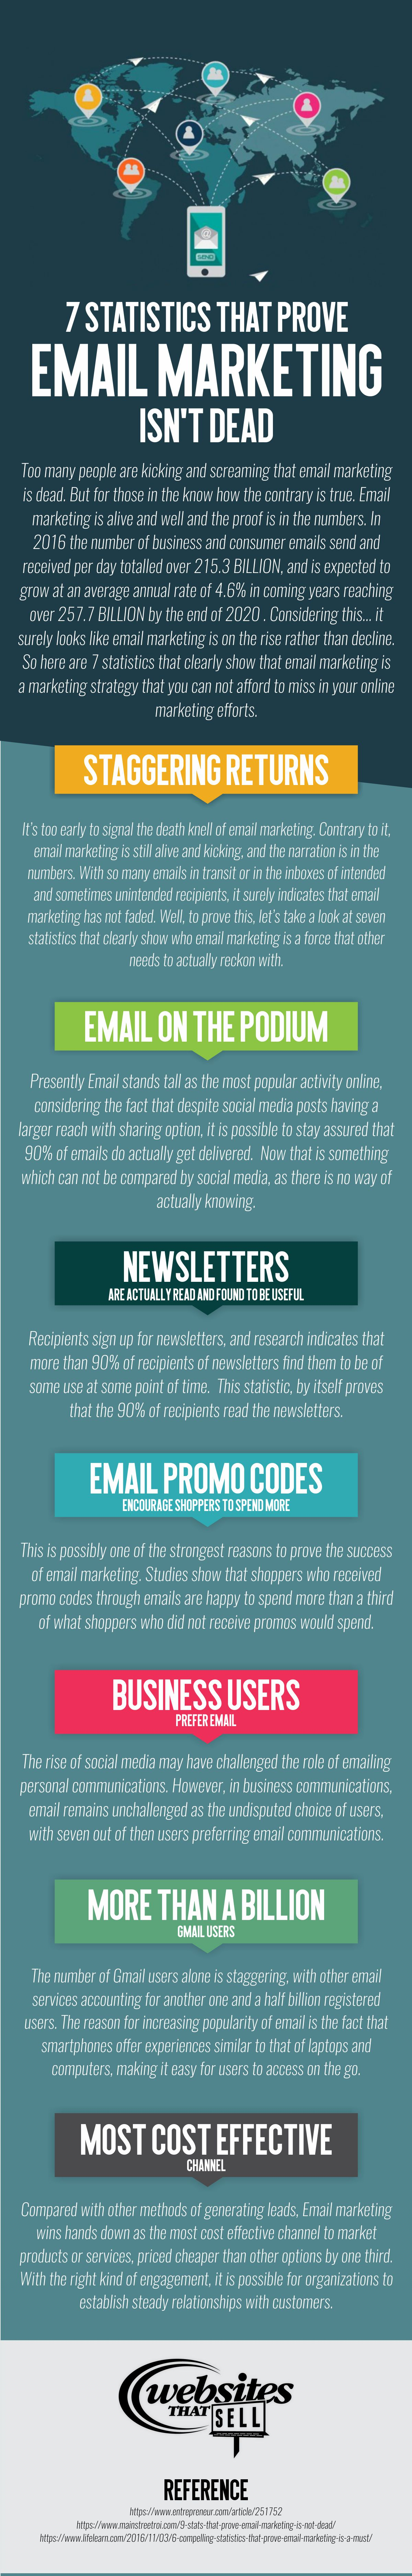 7 Statistics That Prove Email Marketing Isnt Dead